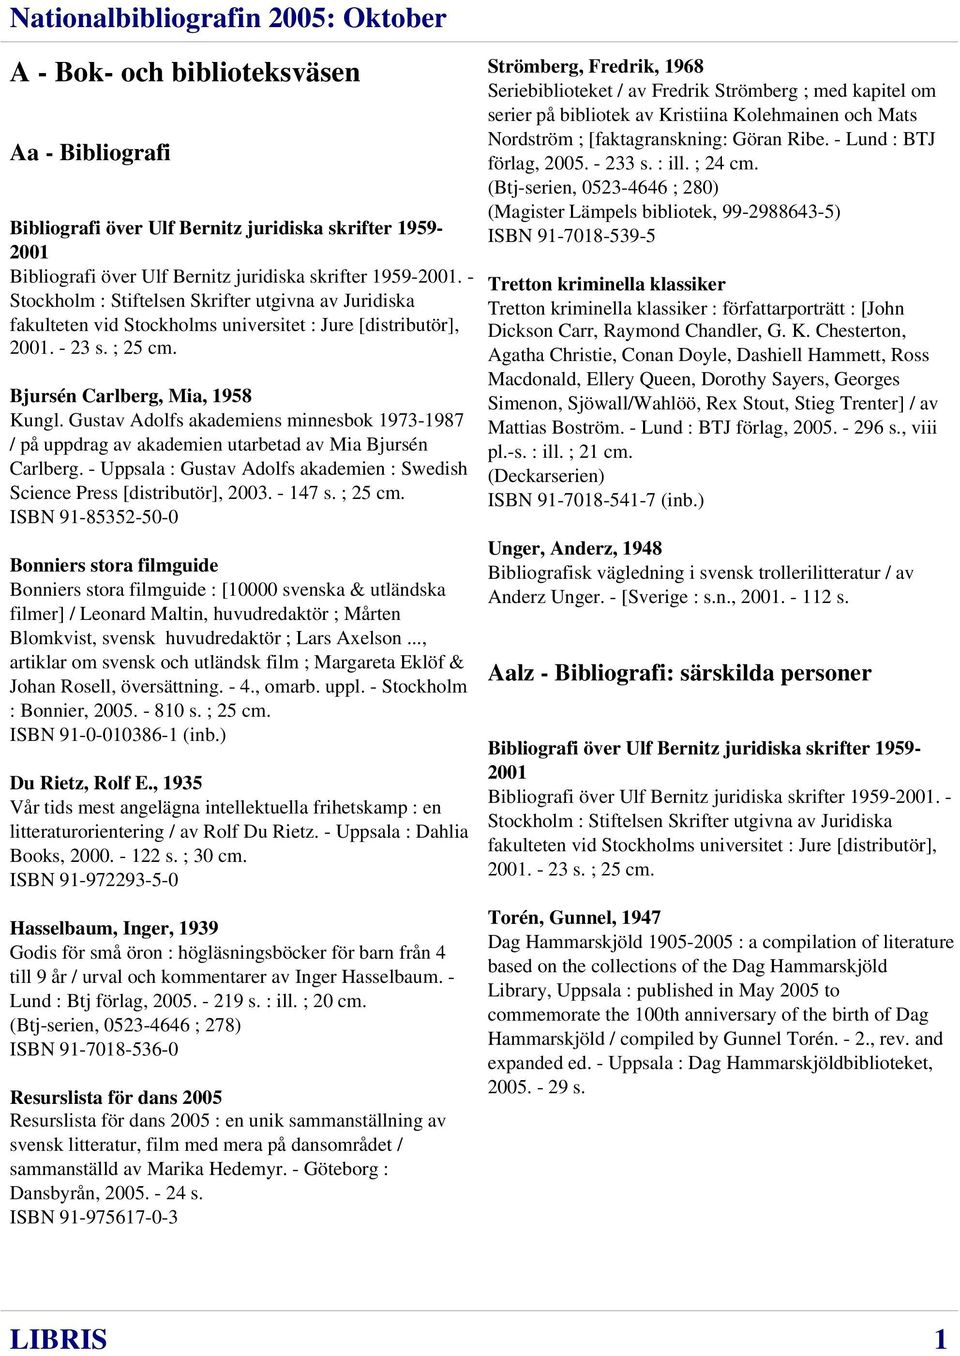 Gustav Adolfs akademiens minnesbok 1973-1987 / på uppdrag av akademien utarbetad av Mia Bjursén Carlberg. - Uppsala : Gustav Adolfs akademien : Swedish Science Press [distributör], 2003. - 147 s.